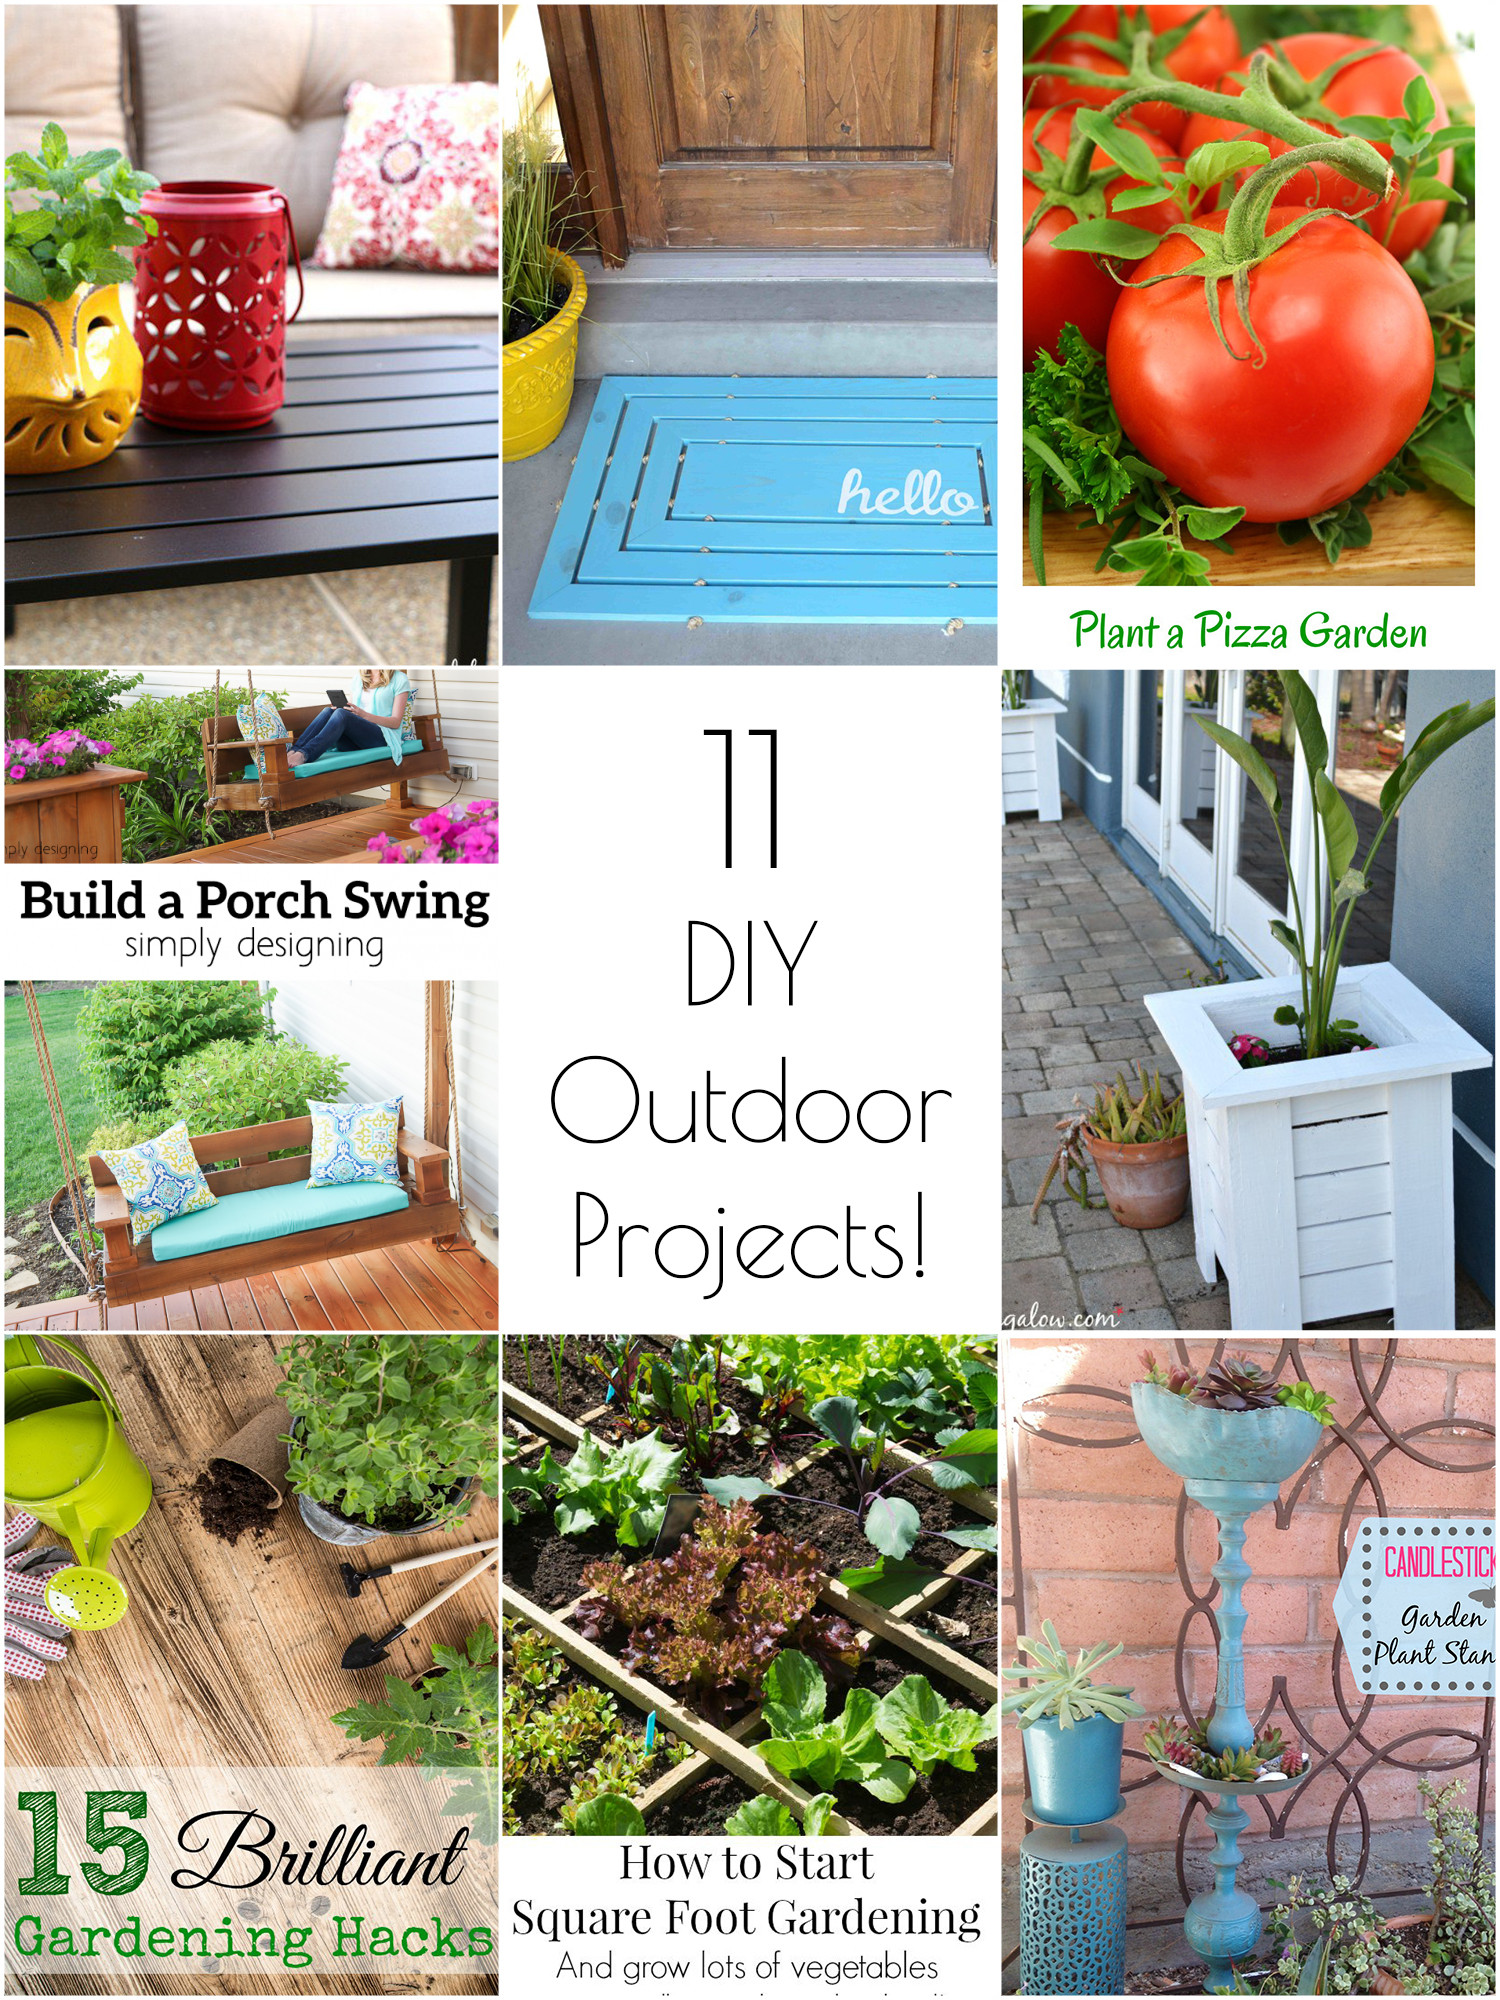 DIY Projects Outdoor  So Creative 11 Amazing DIY Outdoor Projects